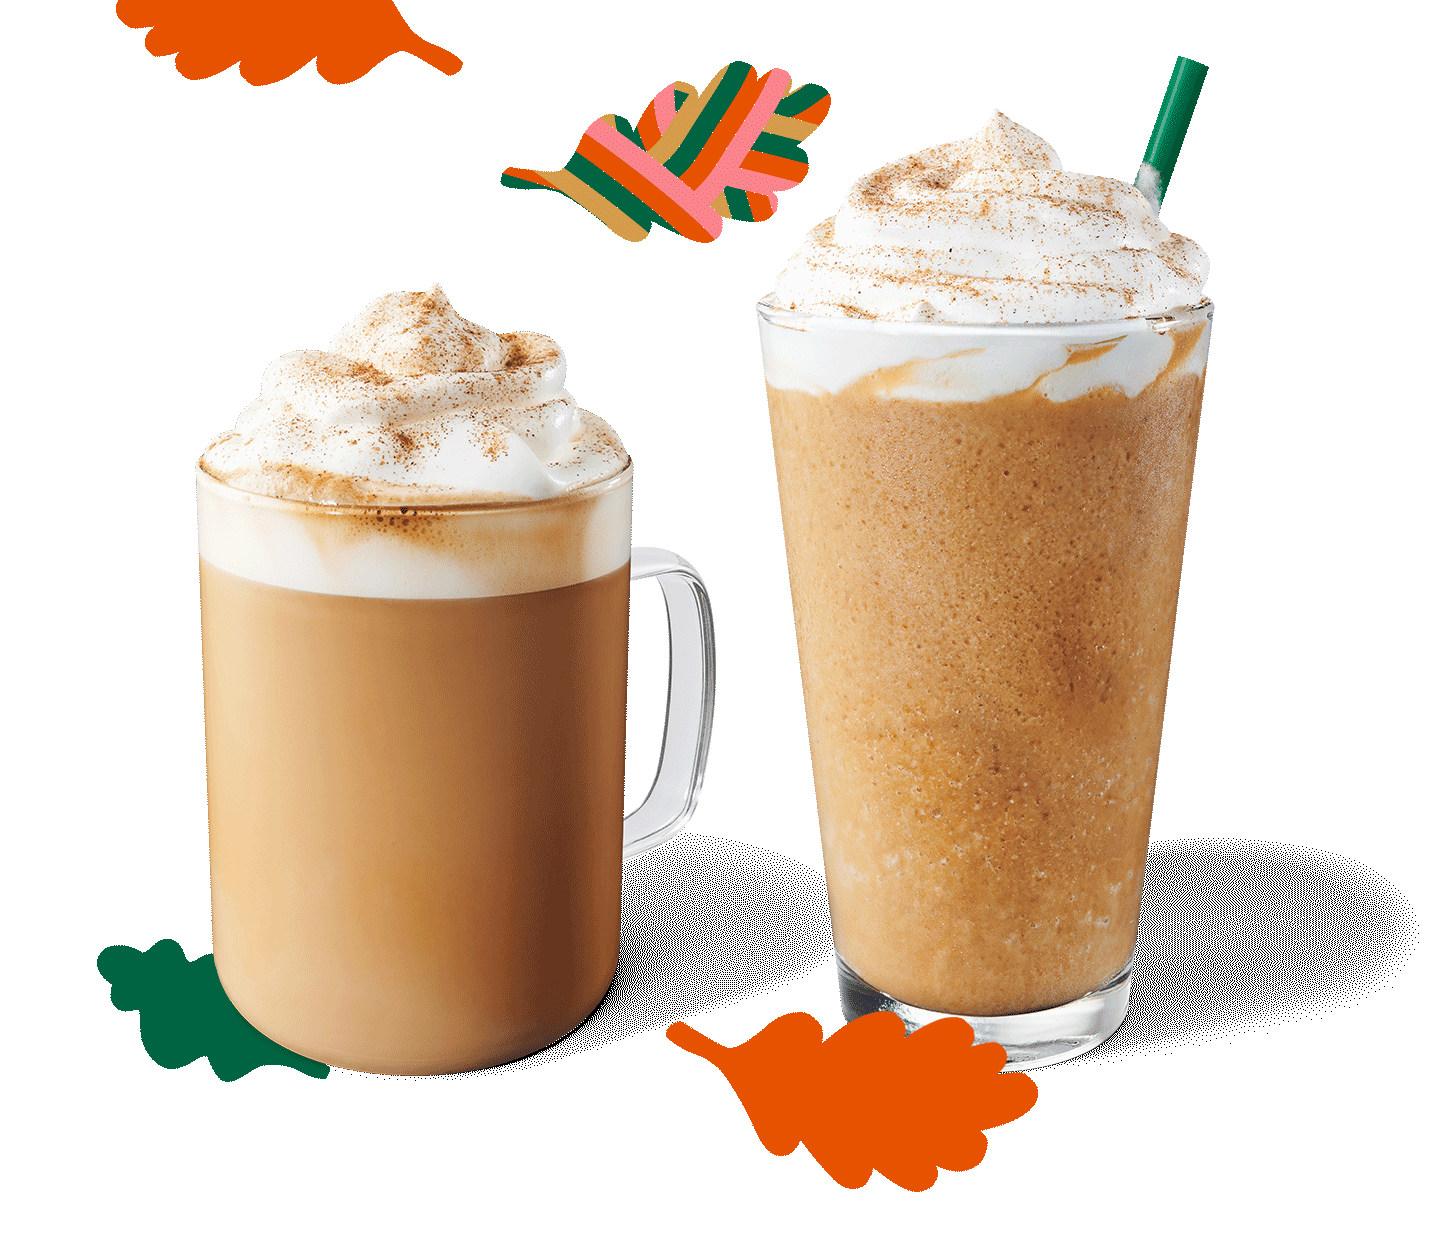 A Pumpkin Spice Frappuccino® blended beverage sits next to a Pumpkin Spice Latte in a layout with graphic, fall leaves.